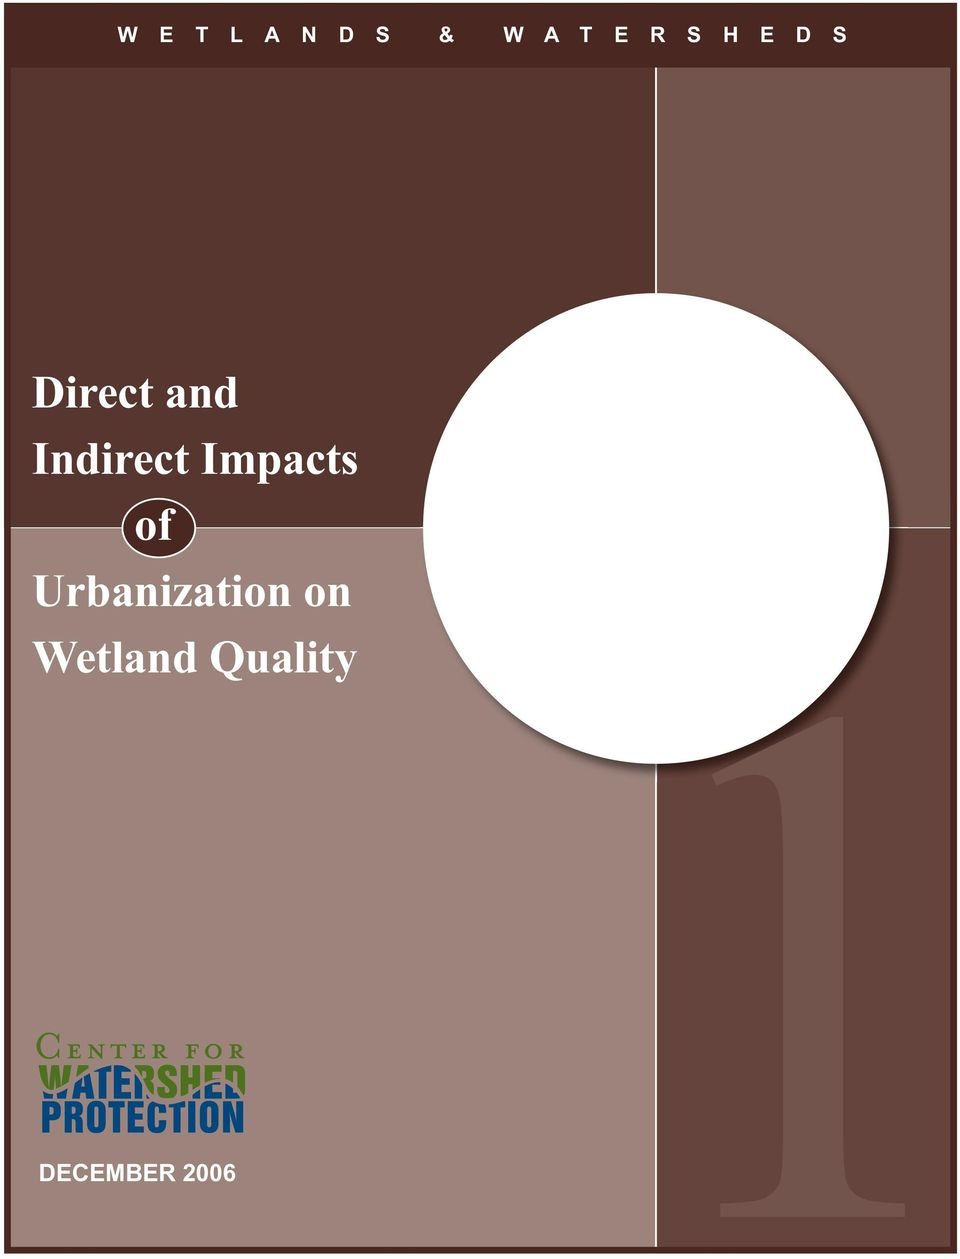 Indirect Impacts of